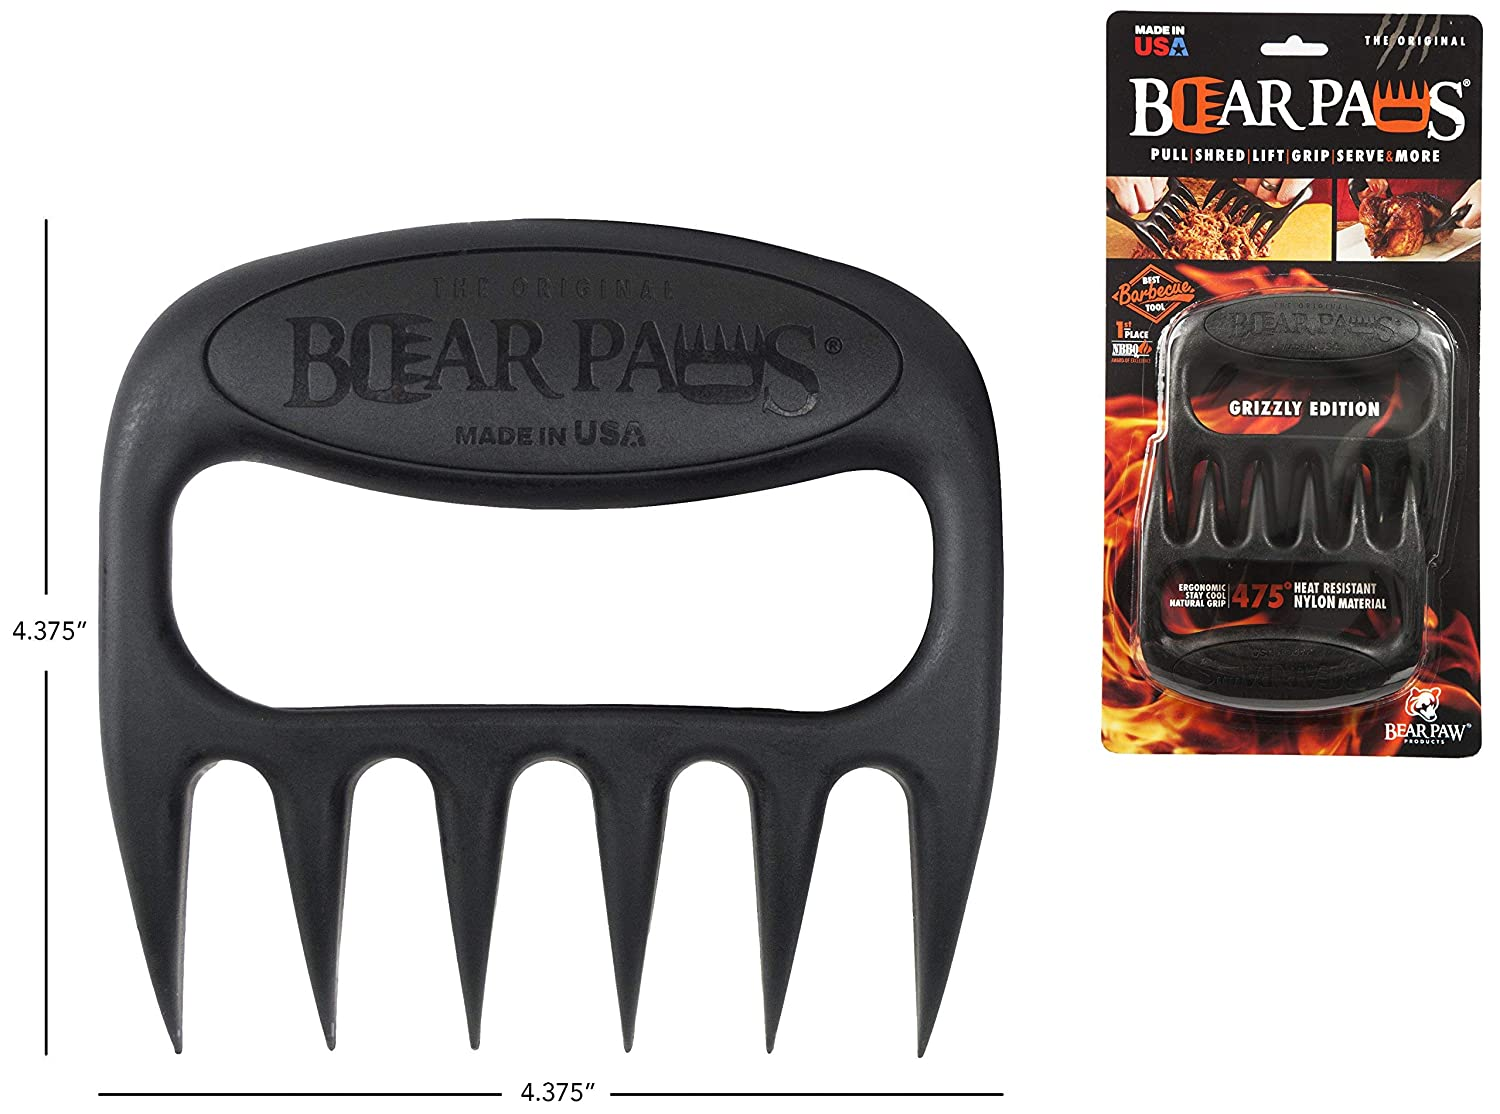 The Original Bear Paws Shredder Claws - Easily Lift, Handle, Shred, and Cut Meats - Essential for BBQ Pros - Ultra-Sharp Blades and Heat Resistant Nylon (Renewed) 81dFDq1C9gL